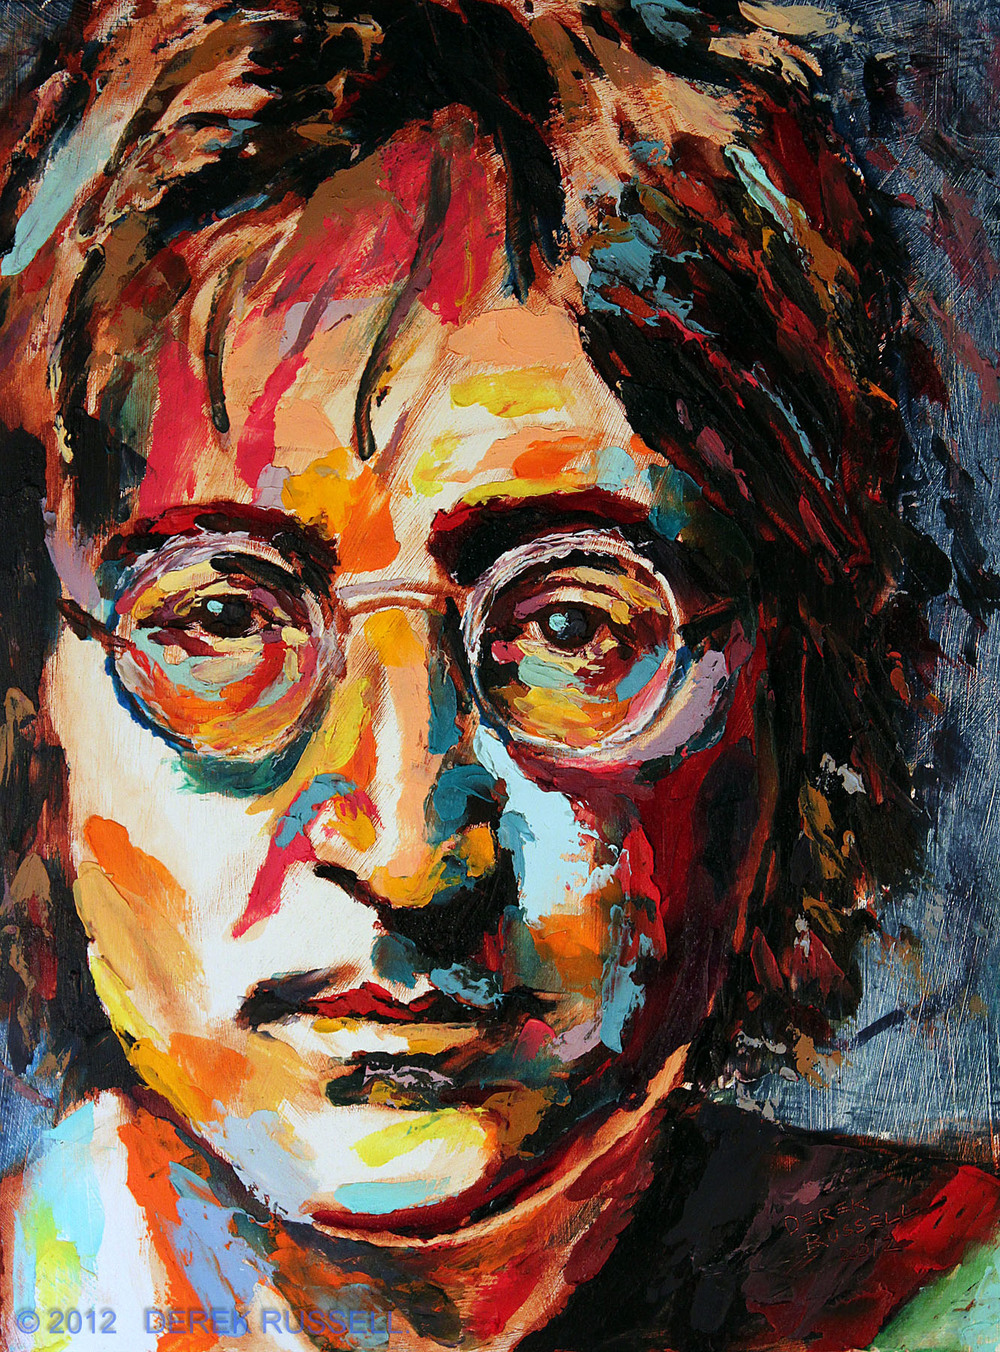 john lennon imagine mp3john lennon imagine, john lennon imagine текст, john lennon woman, john lennon imagine chords, john lennon stand by me, john lennon quotes, john lennon god, john lennon mother, john lennon imagine ноты, john lennon imagine mp3, john lennon imagine аккорды, john lennon biography, john lennon love, john lennon oh my love, john lennon скачать, john lennon working class hero, john lennon mind games, john lennon wiki, john lennon airport, john lennon слушать